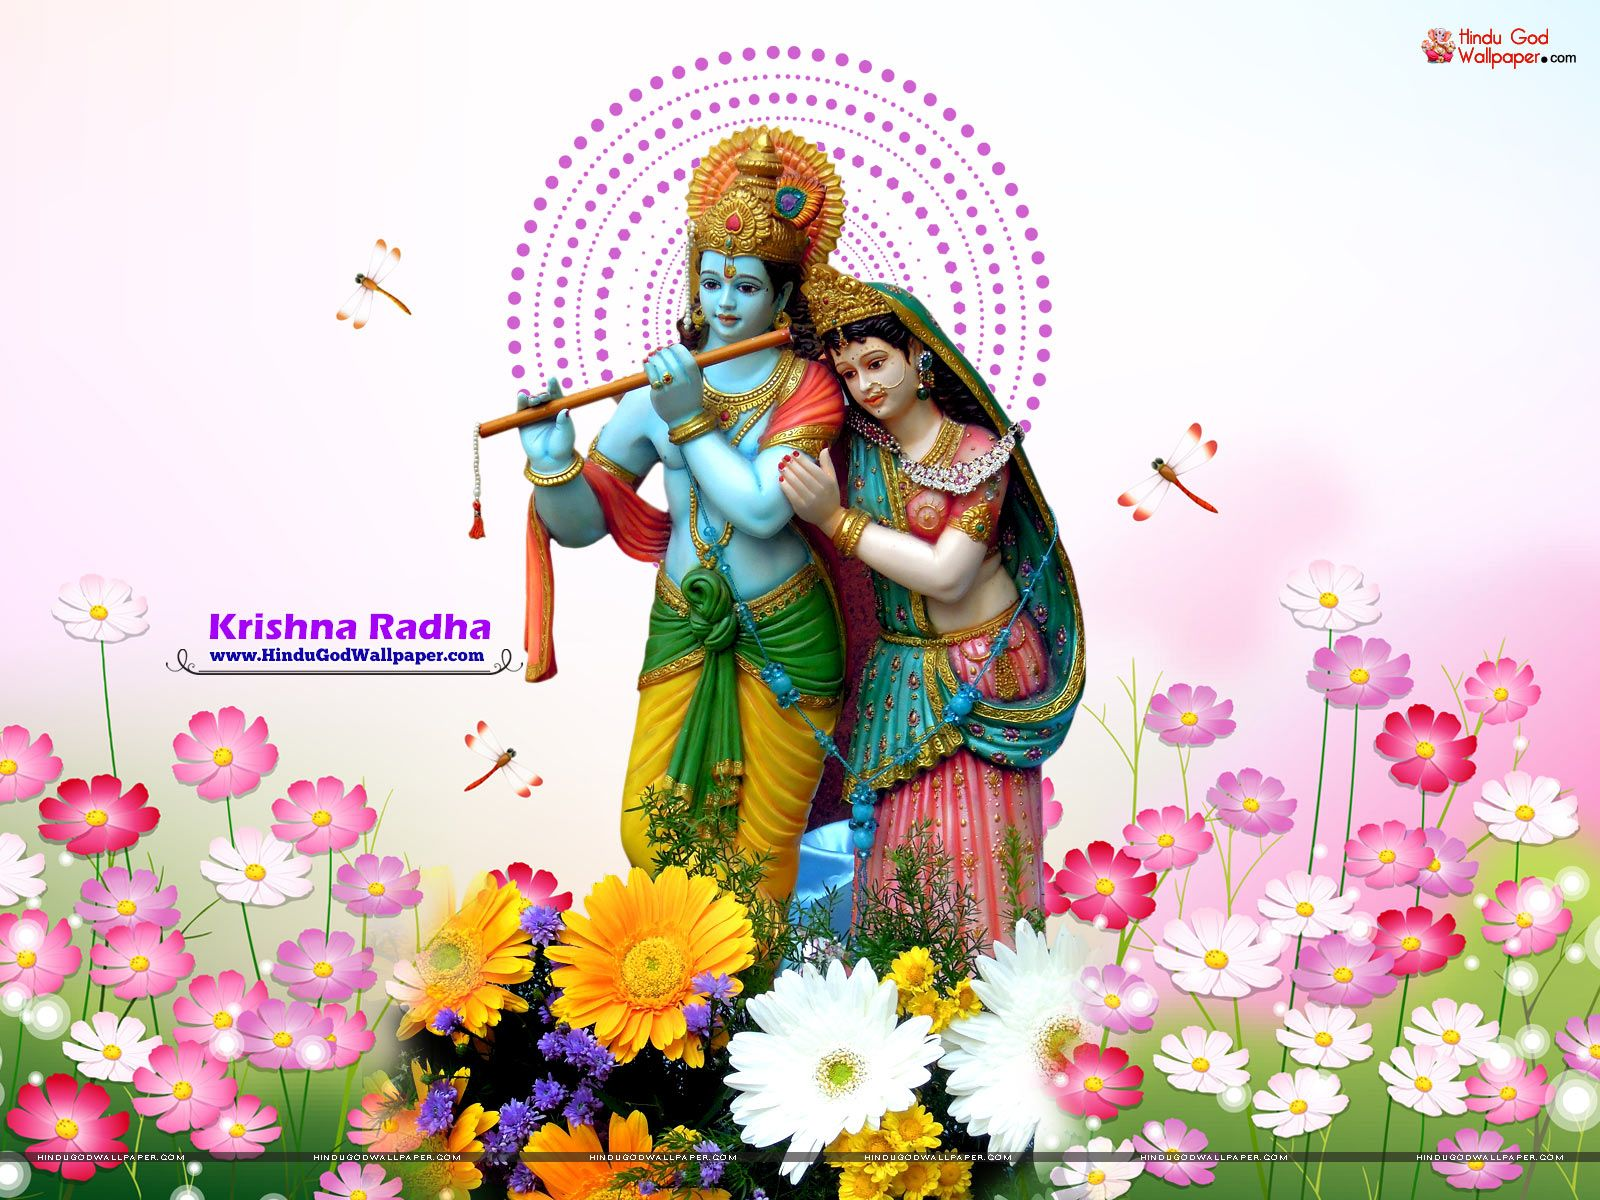 Krishna Radha Statue Wallpapers Photos Download Wallpaper Stone Statues 3d Wallpaper